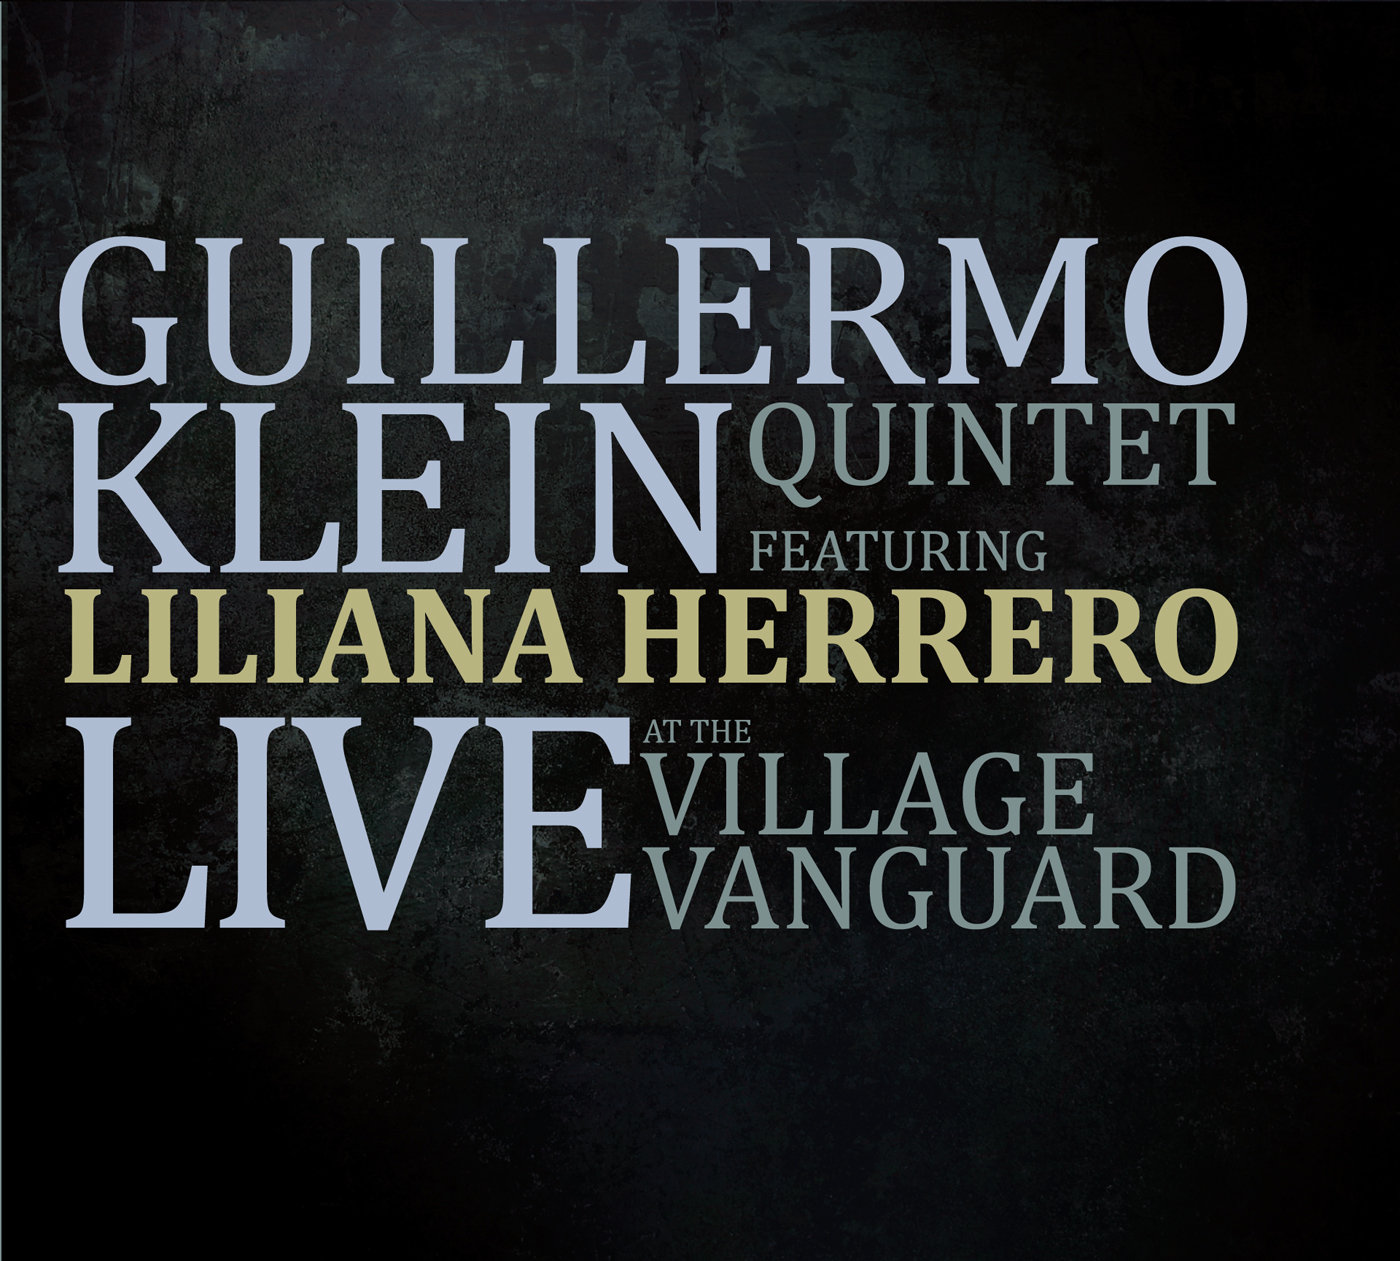 Live at the Village Vanguard  by Guillermo  Klein cover